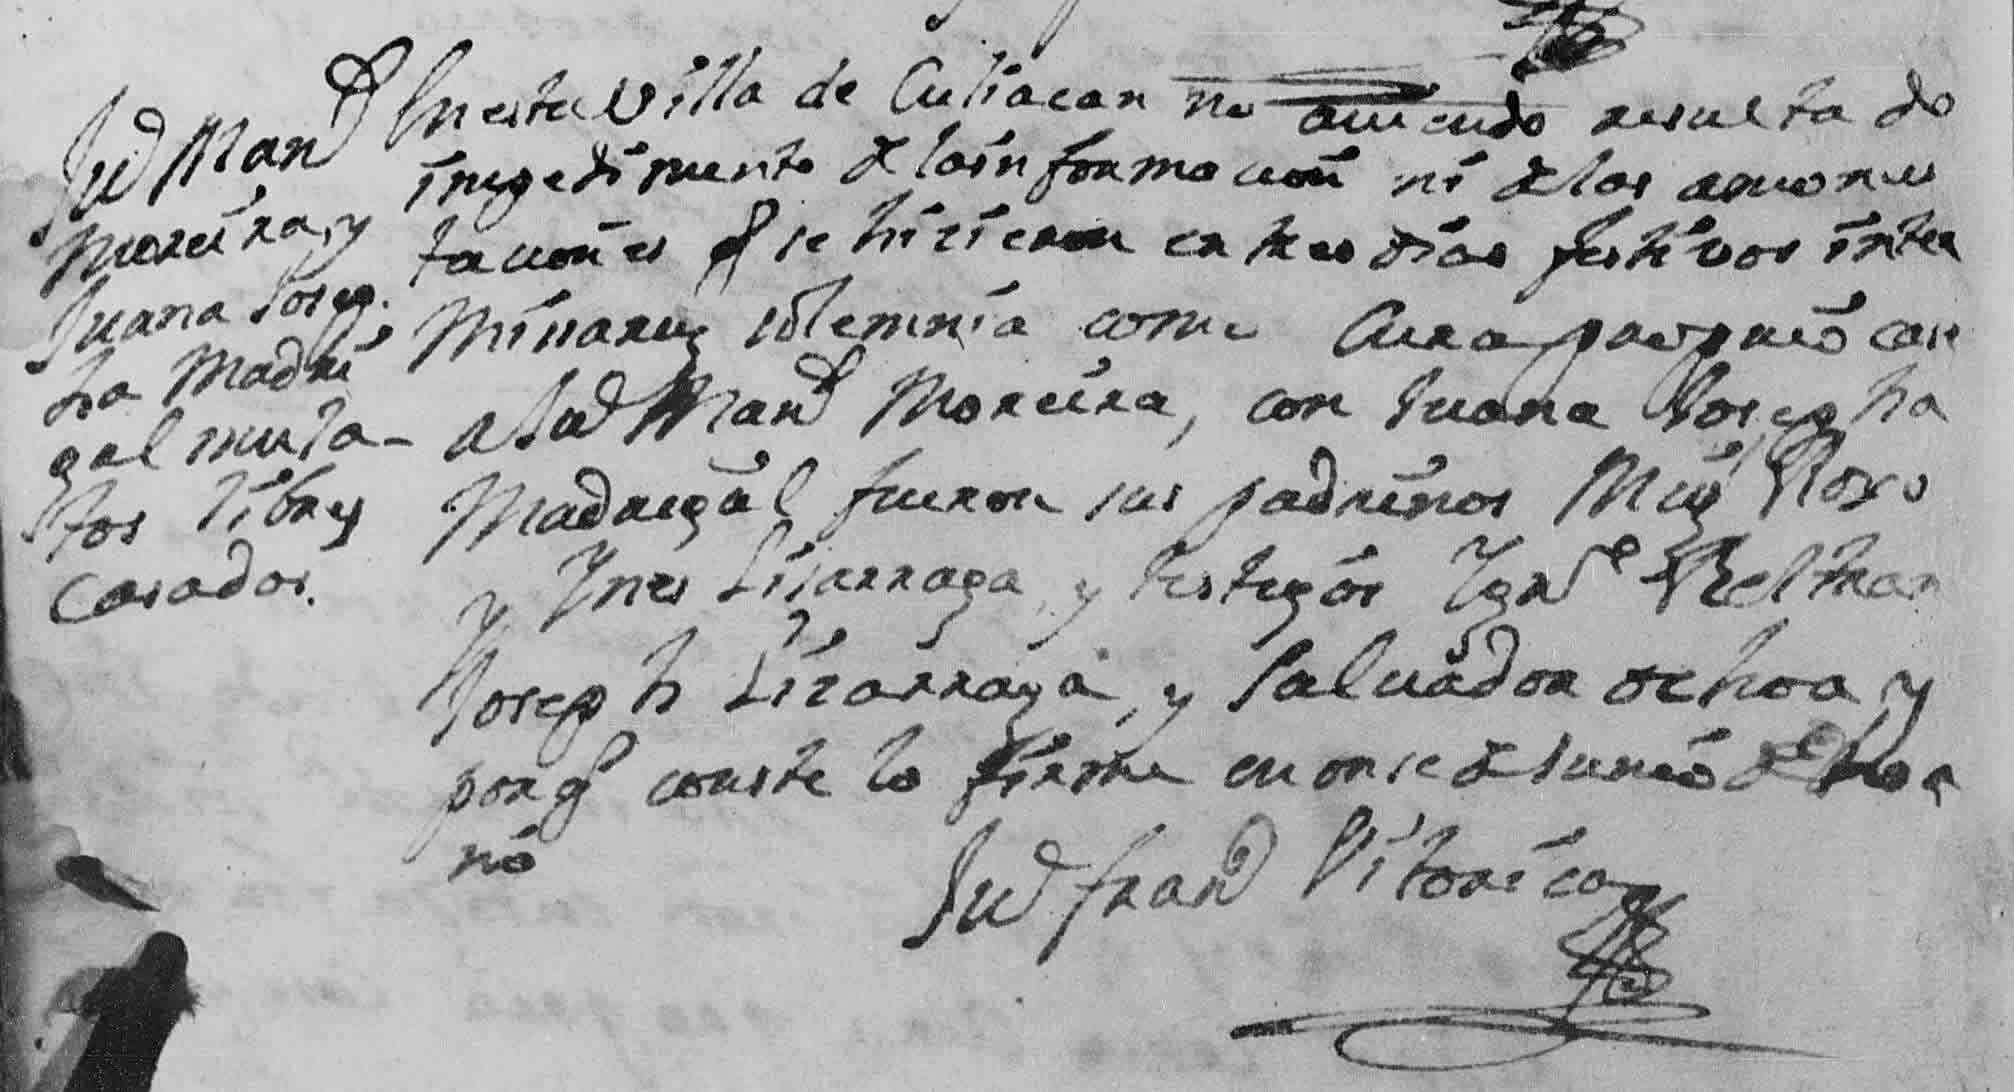 Marriage record of Manuel Moraila and María Juana Josefa Madrigal, 2 Mar 1752